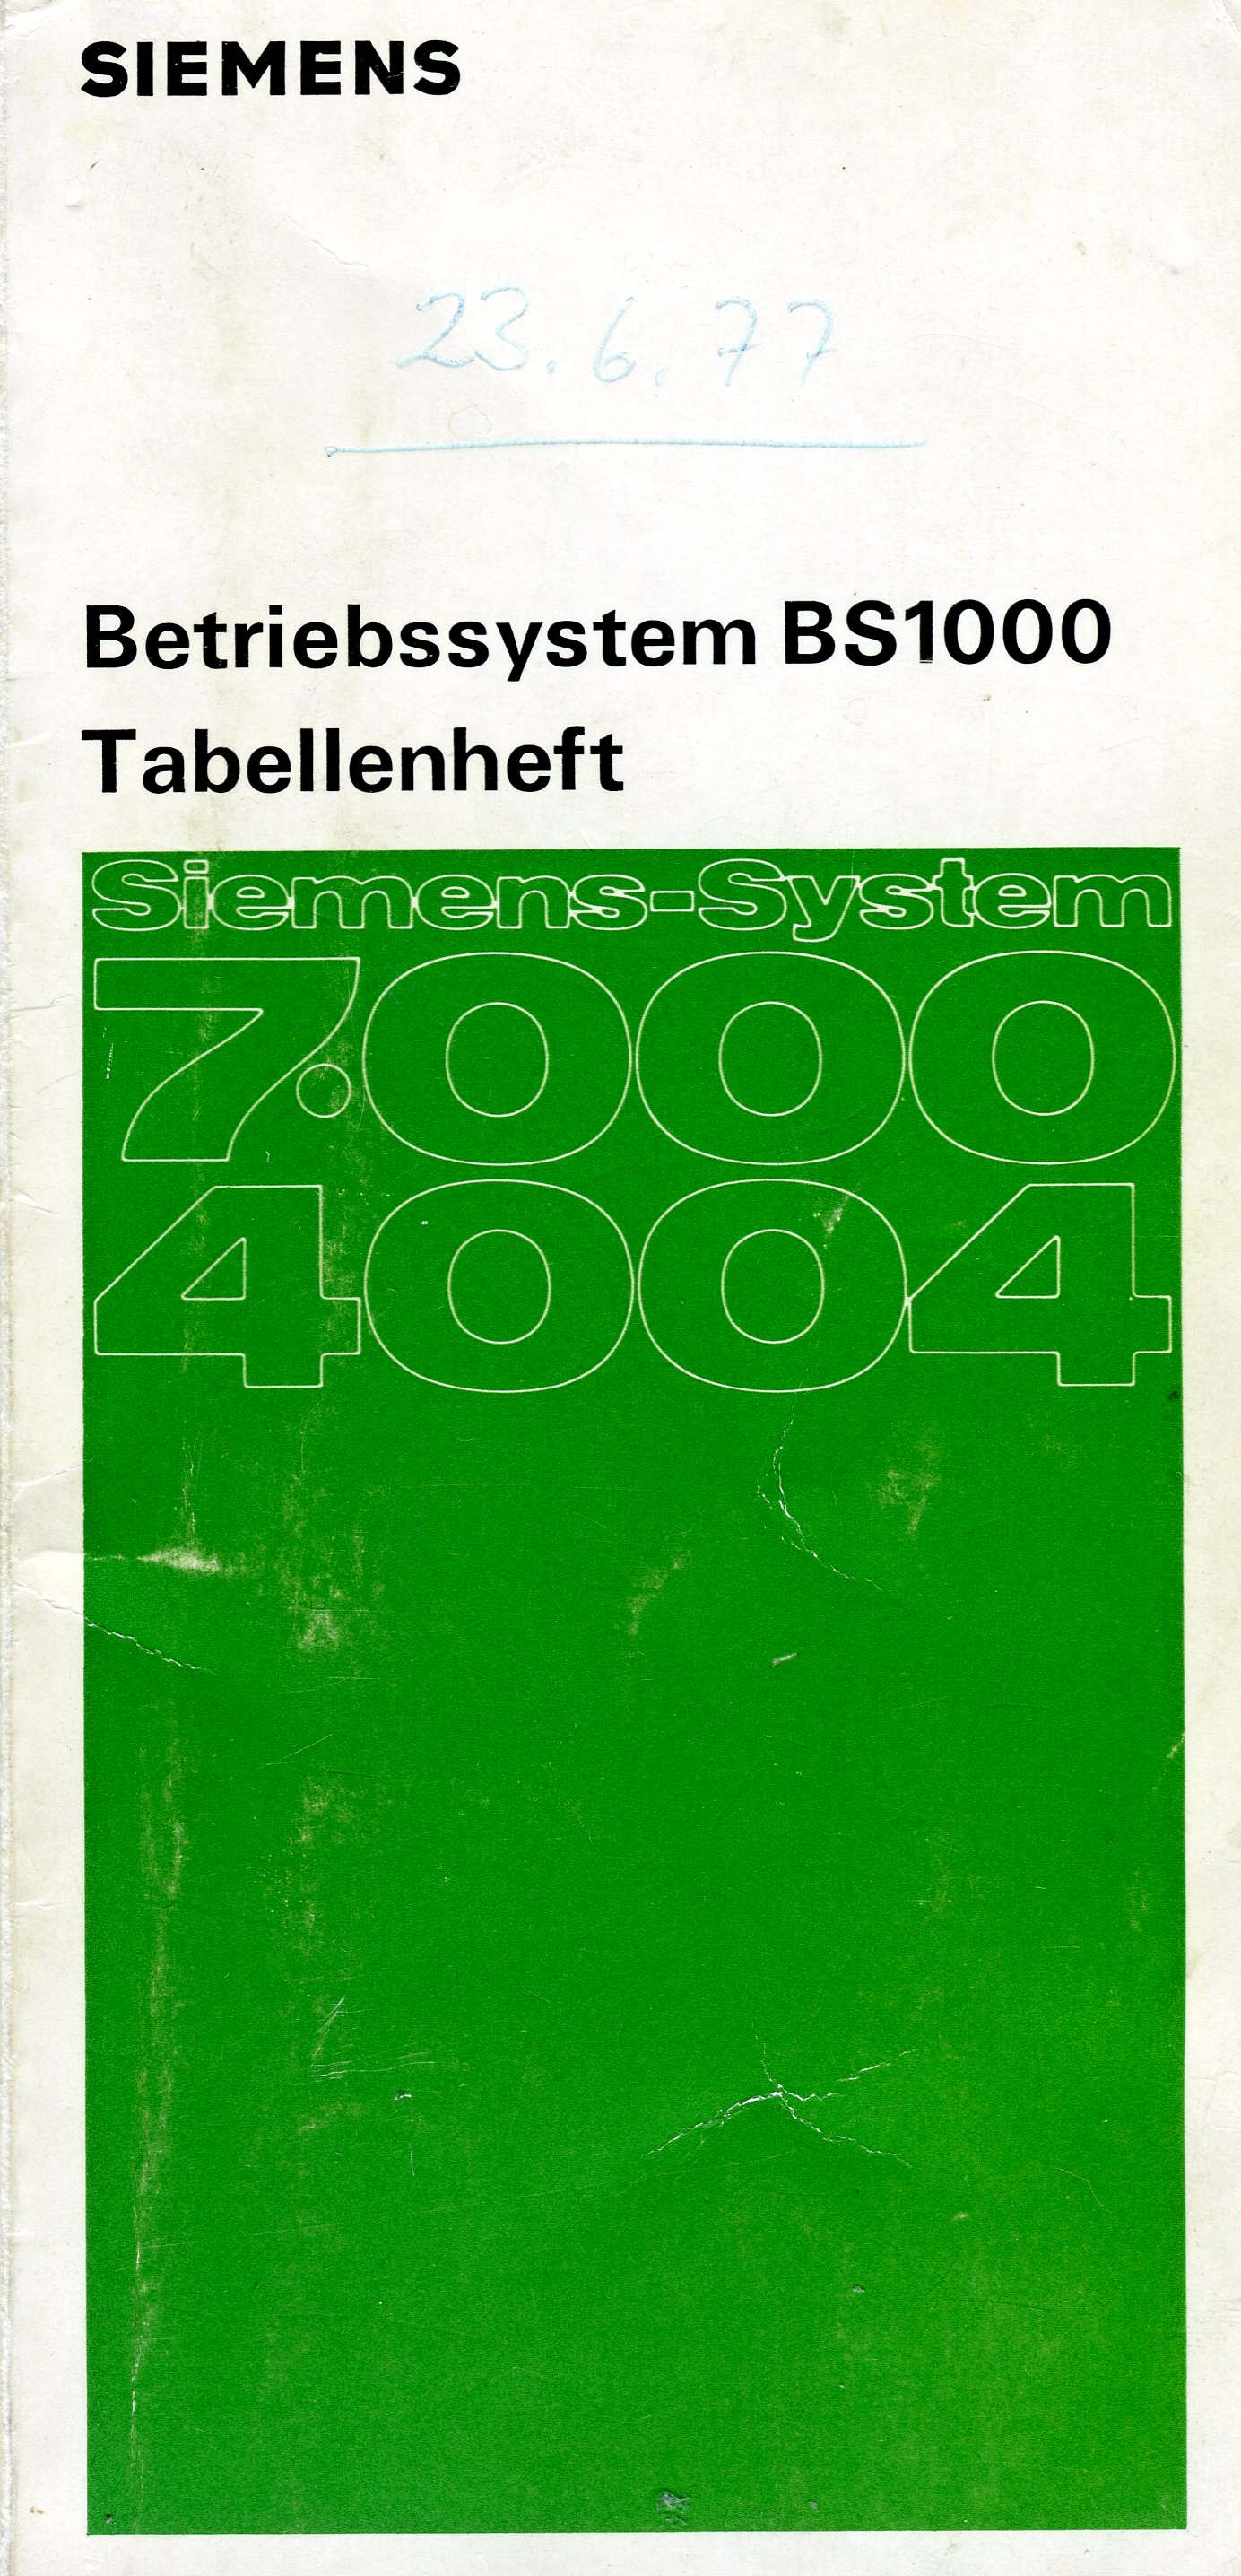 Tabellenheft BS1000 V1.4 1977